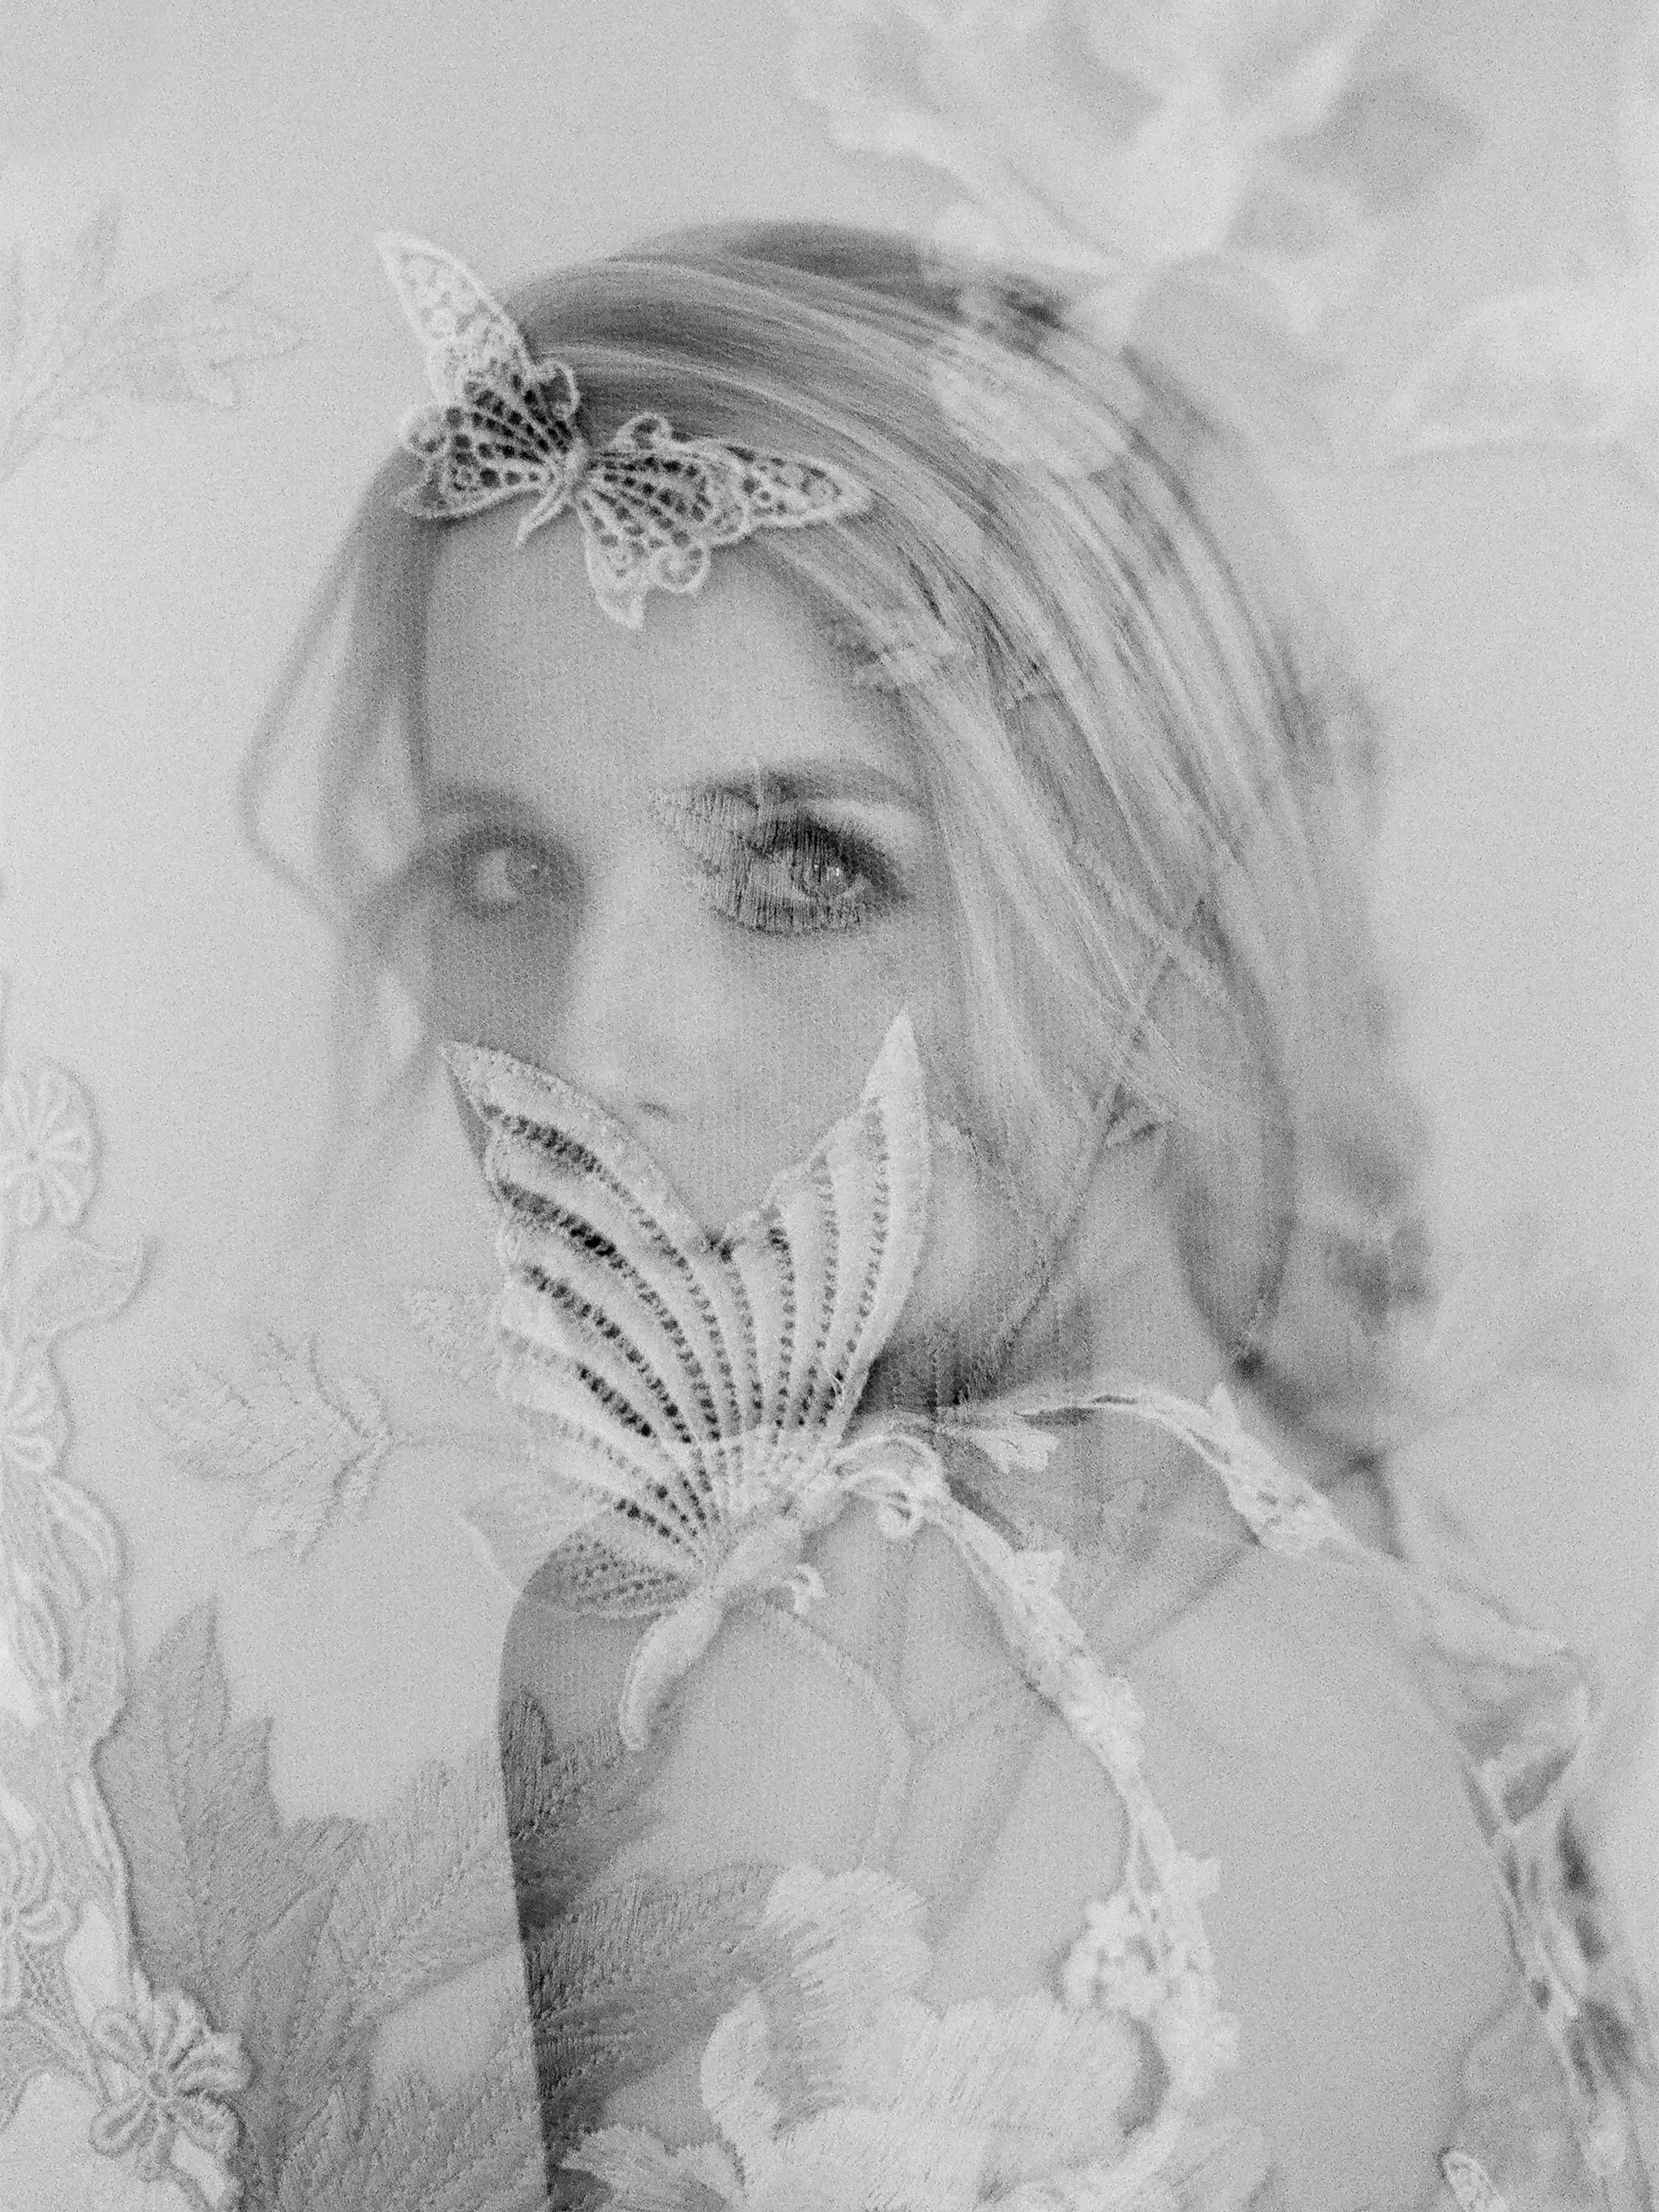 Brides face seen through applique veil with butterflies- photo by Jen Huang